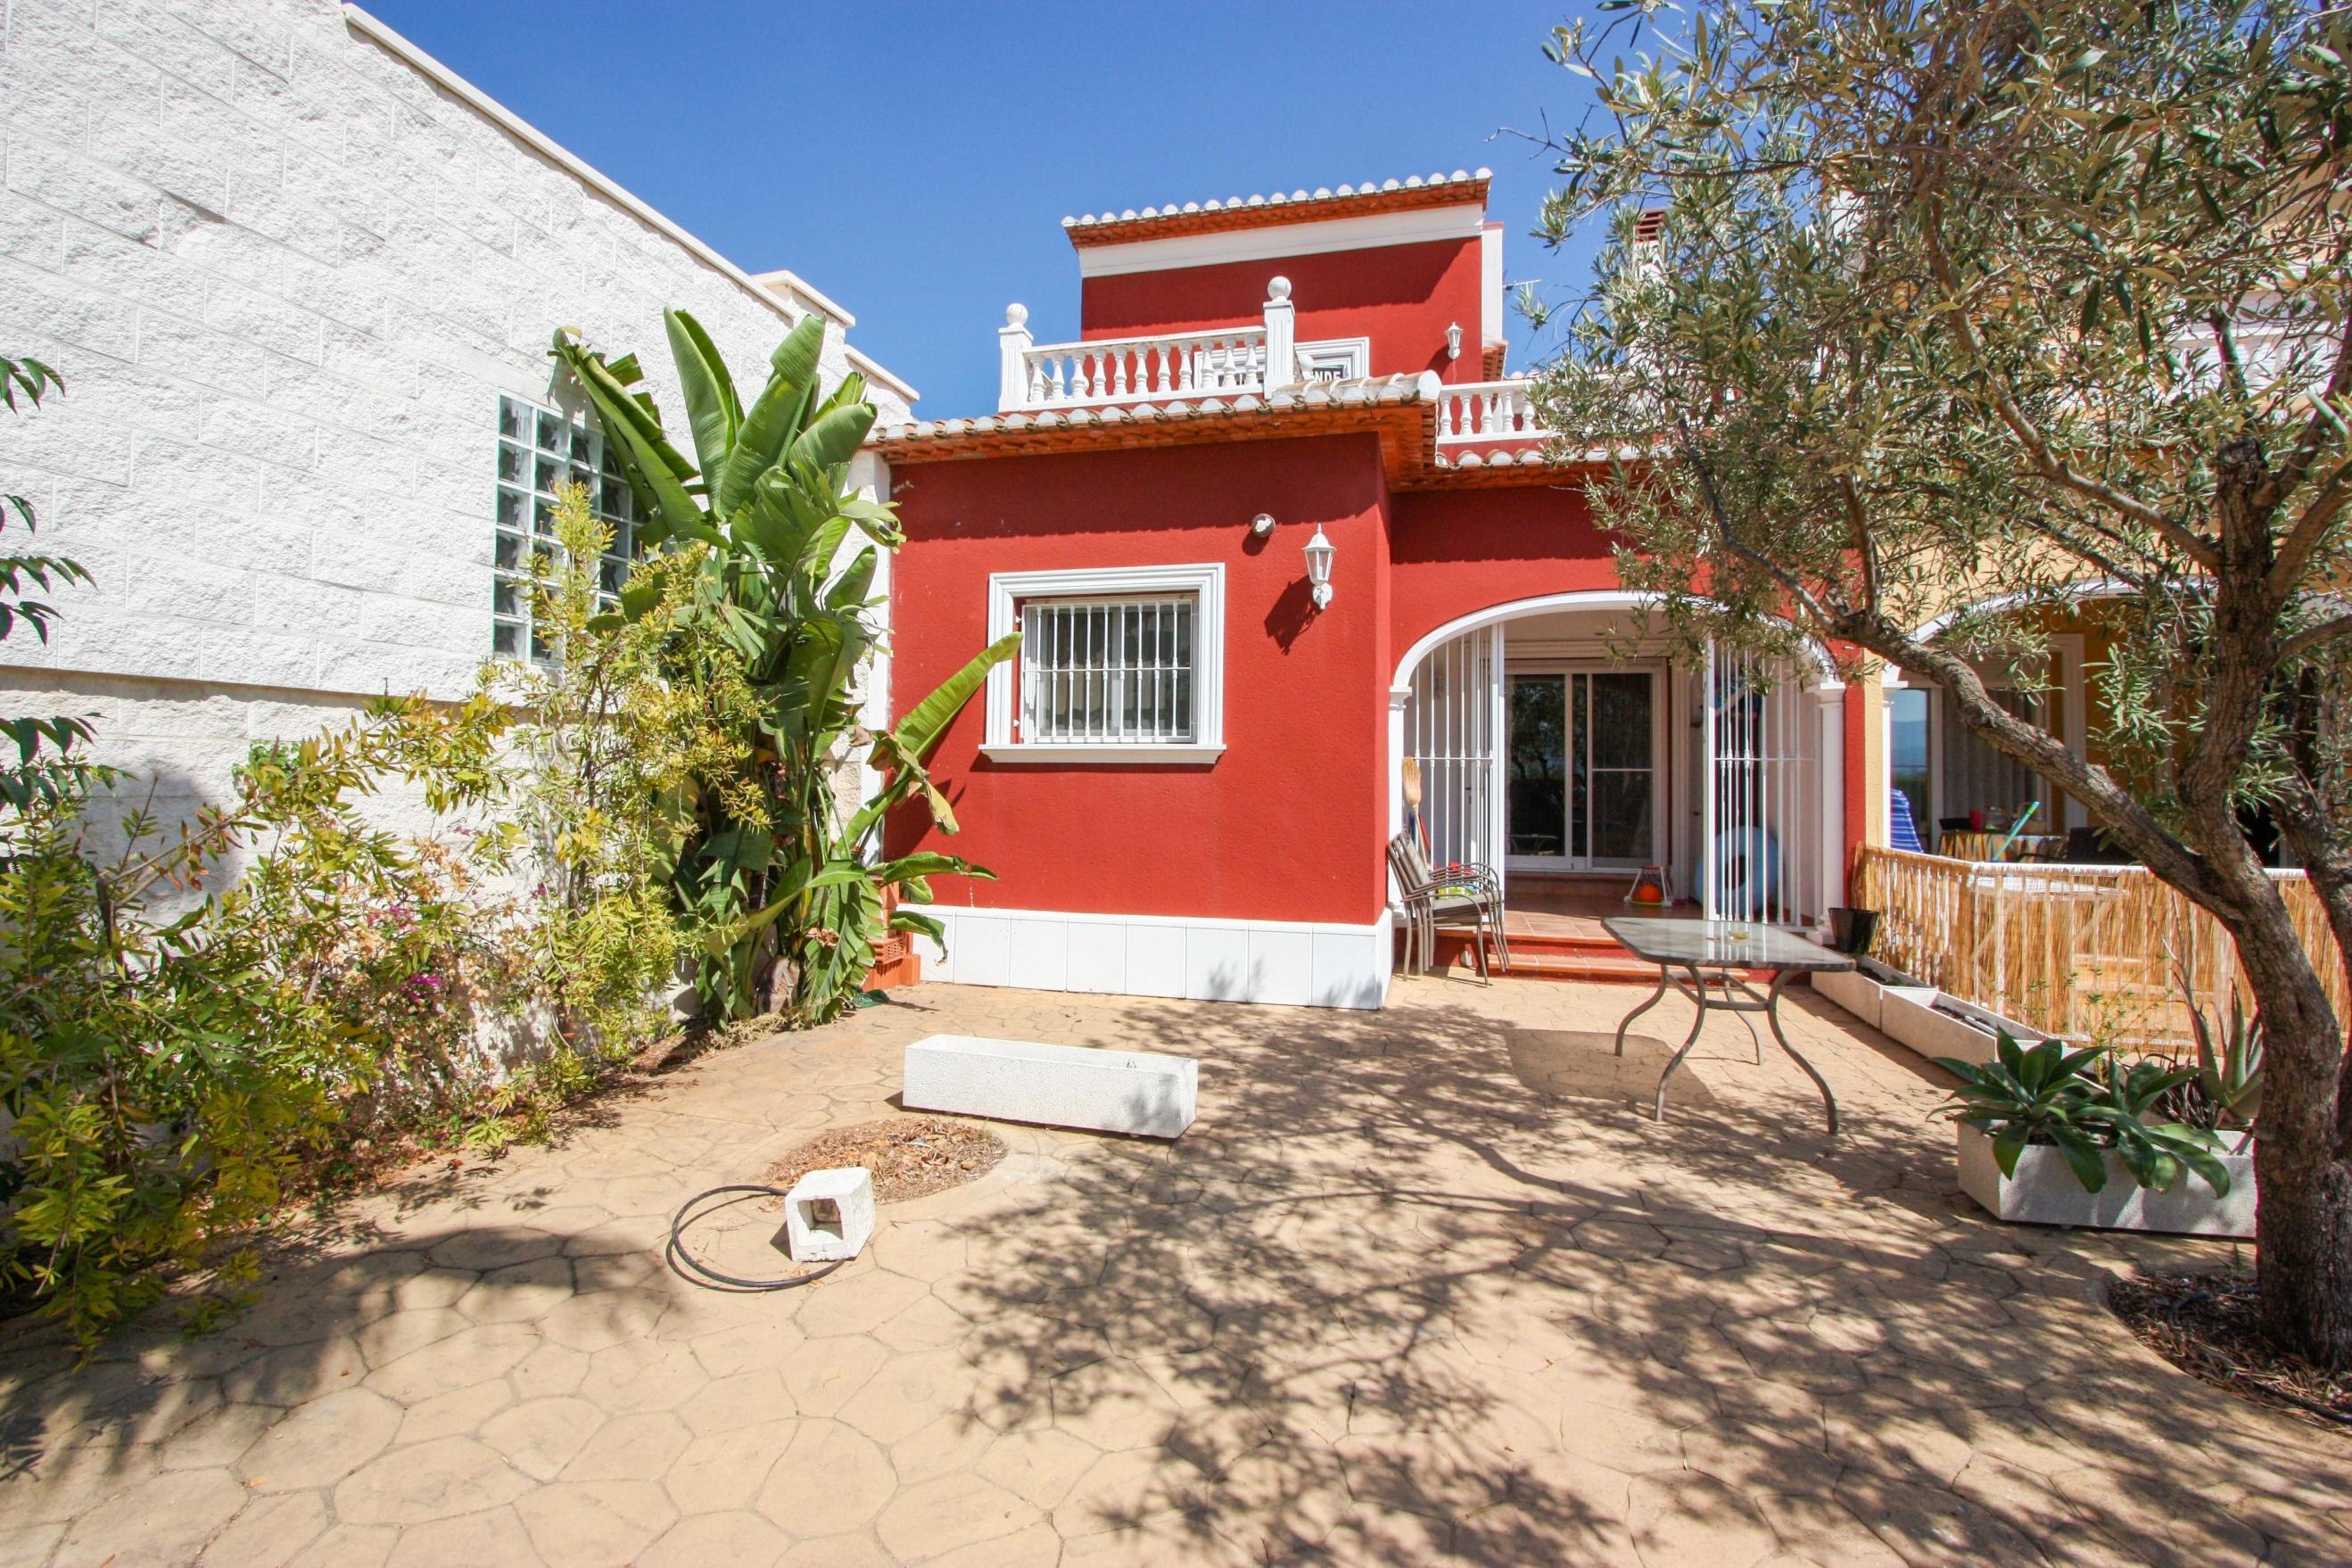 3 Bedroom Town house in Pego